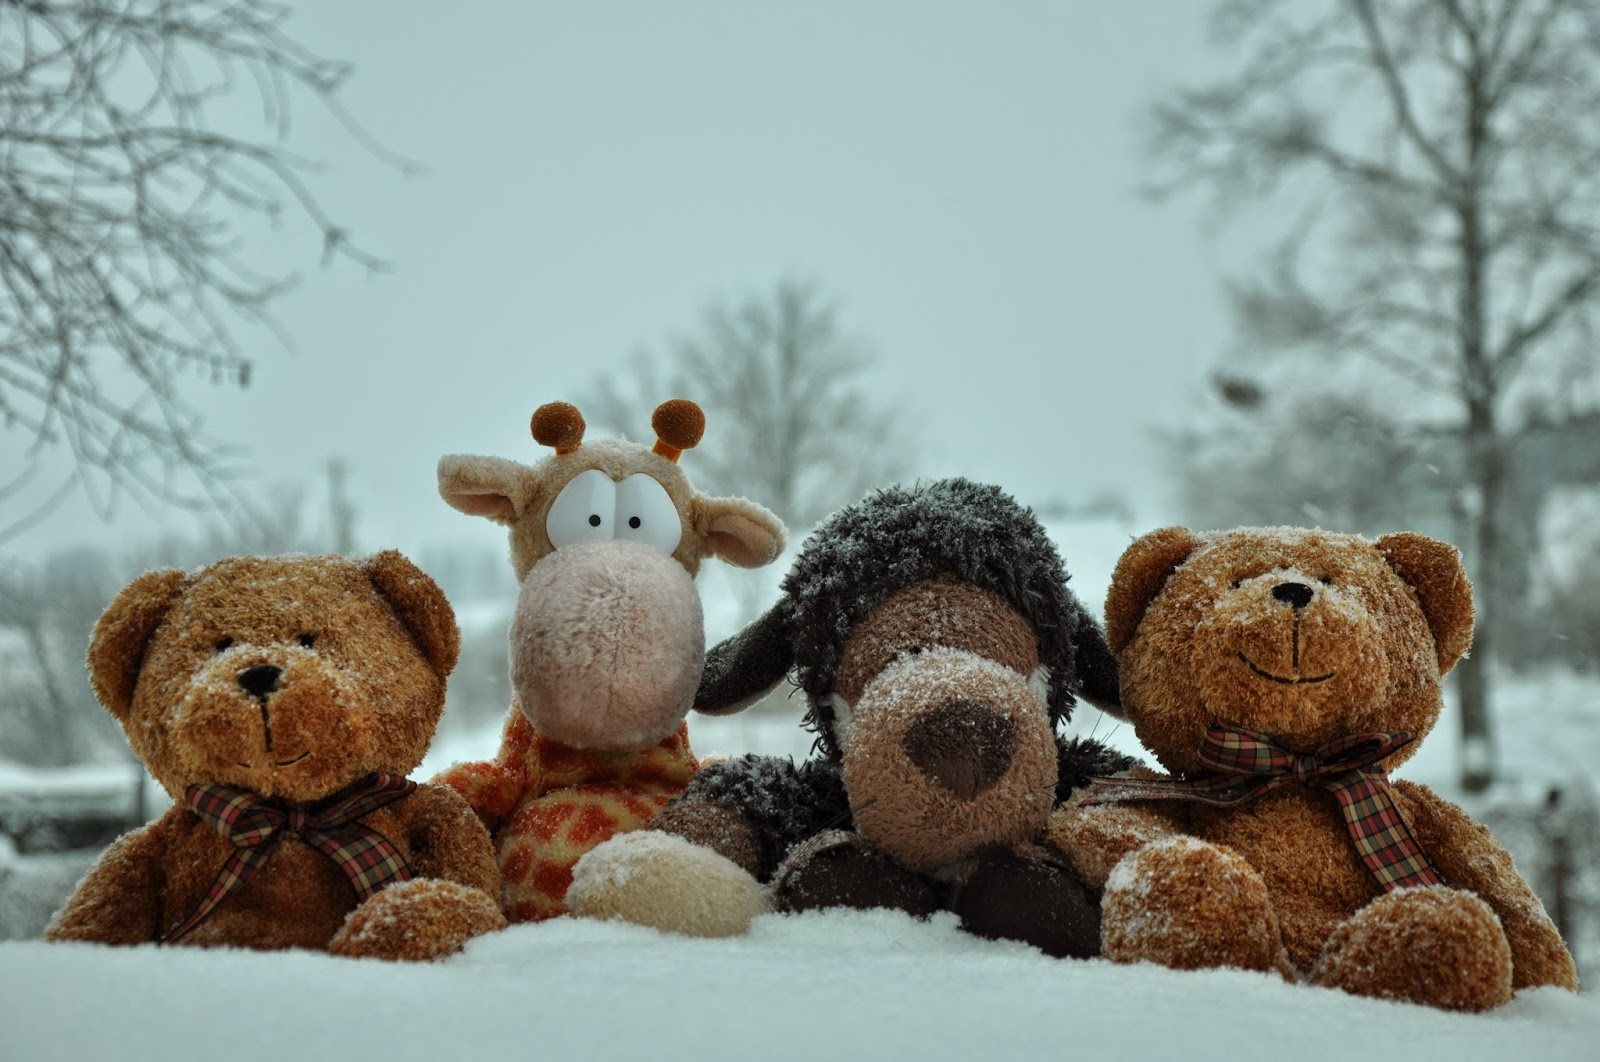 cute teddy bear wallpapers for little kids and children